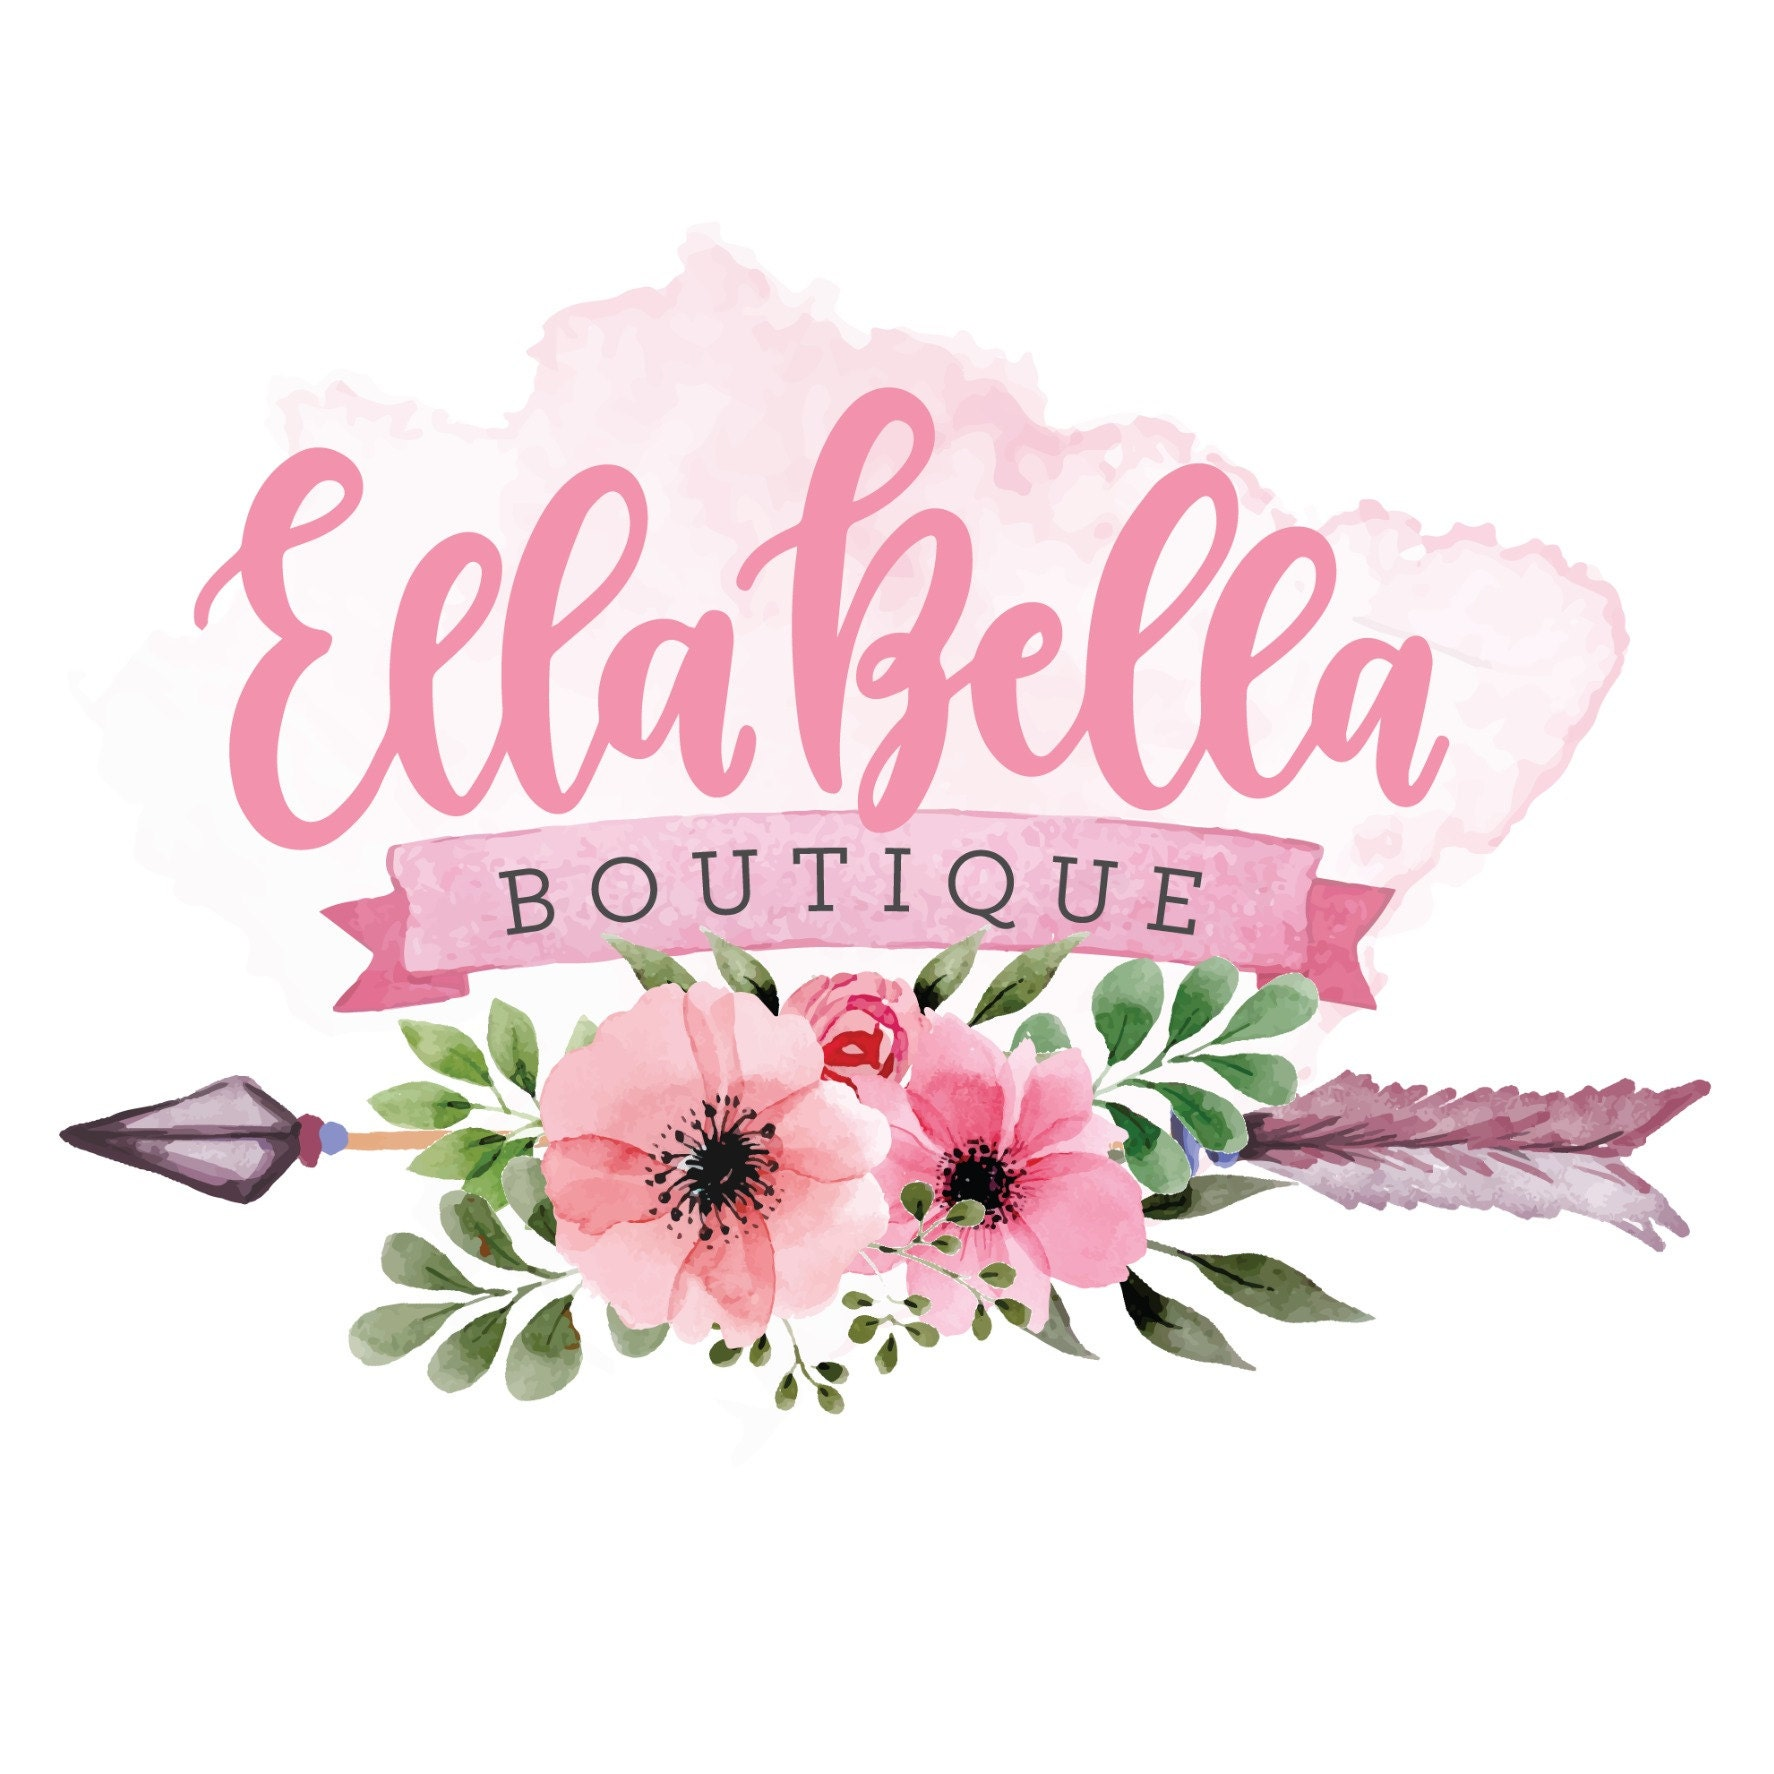 1f9f4ba67 Ella Bella Boutique by EllaBellaBoutiqueOK on Etsy